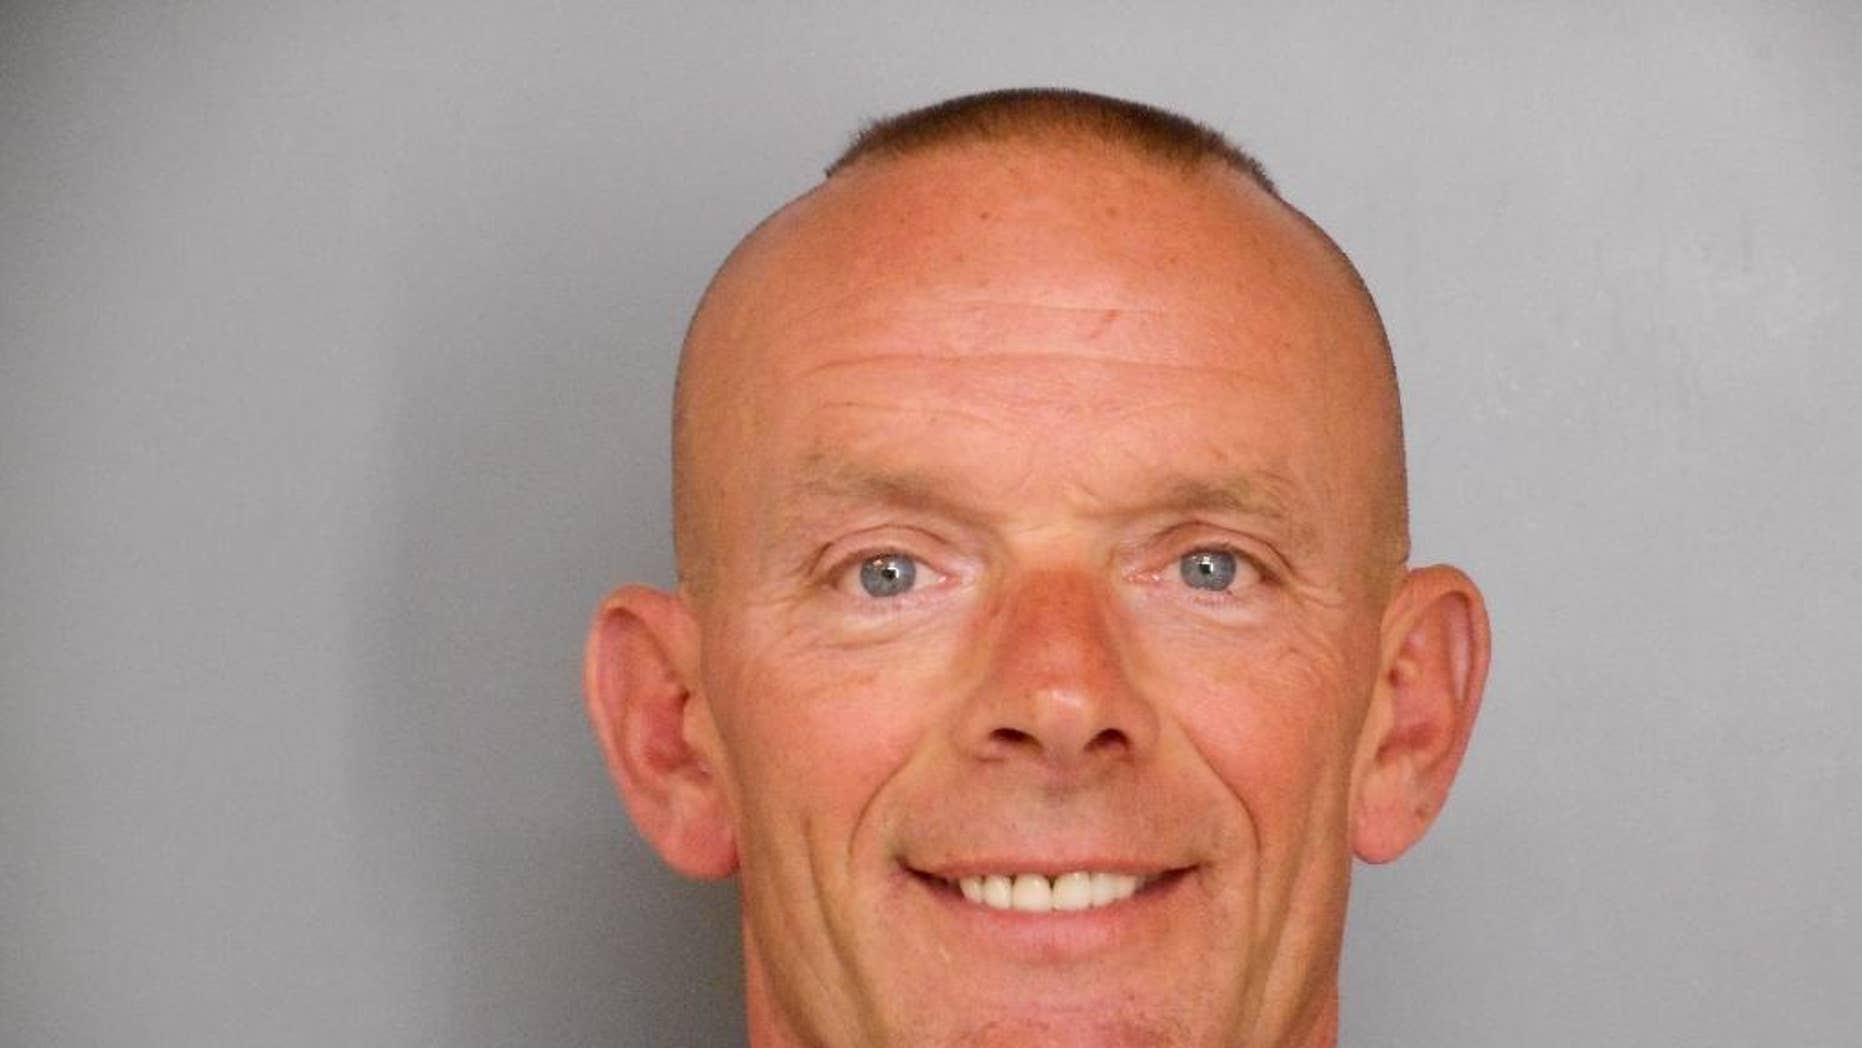 FILE - This undated file photo provided by the Fox Lake Police Department shows Lt. Charles Joseph Gliniewicz. Newly released documents during a news conference on Monday, Jan. 4, 2016, show that at least one officer responding to the fatal shooting of the northern Illinois police officer thought he might have committed suicide while others quickly rejected the idea. Gliniewicz's Sept. 1 death touched off a massive, weeklong manhunt. Authorities later concluded he'd staged his own death to look like homicide after realizing he would be exposed as a thief.  (Fox Lake Police Department photo via AP, File)